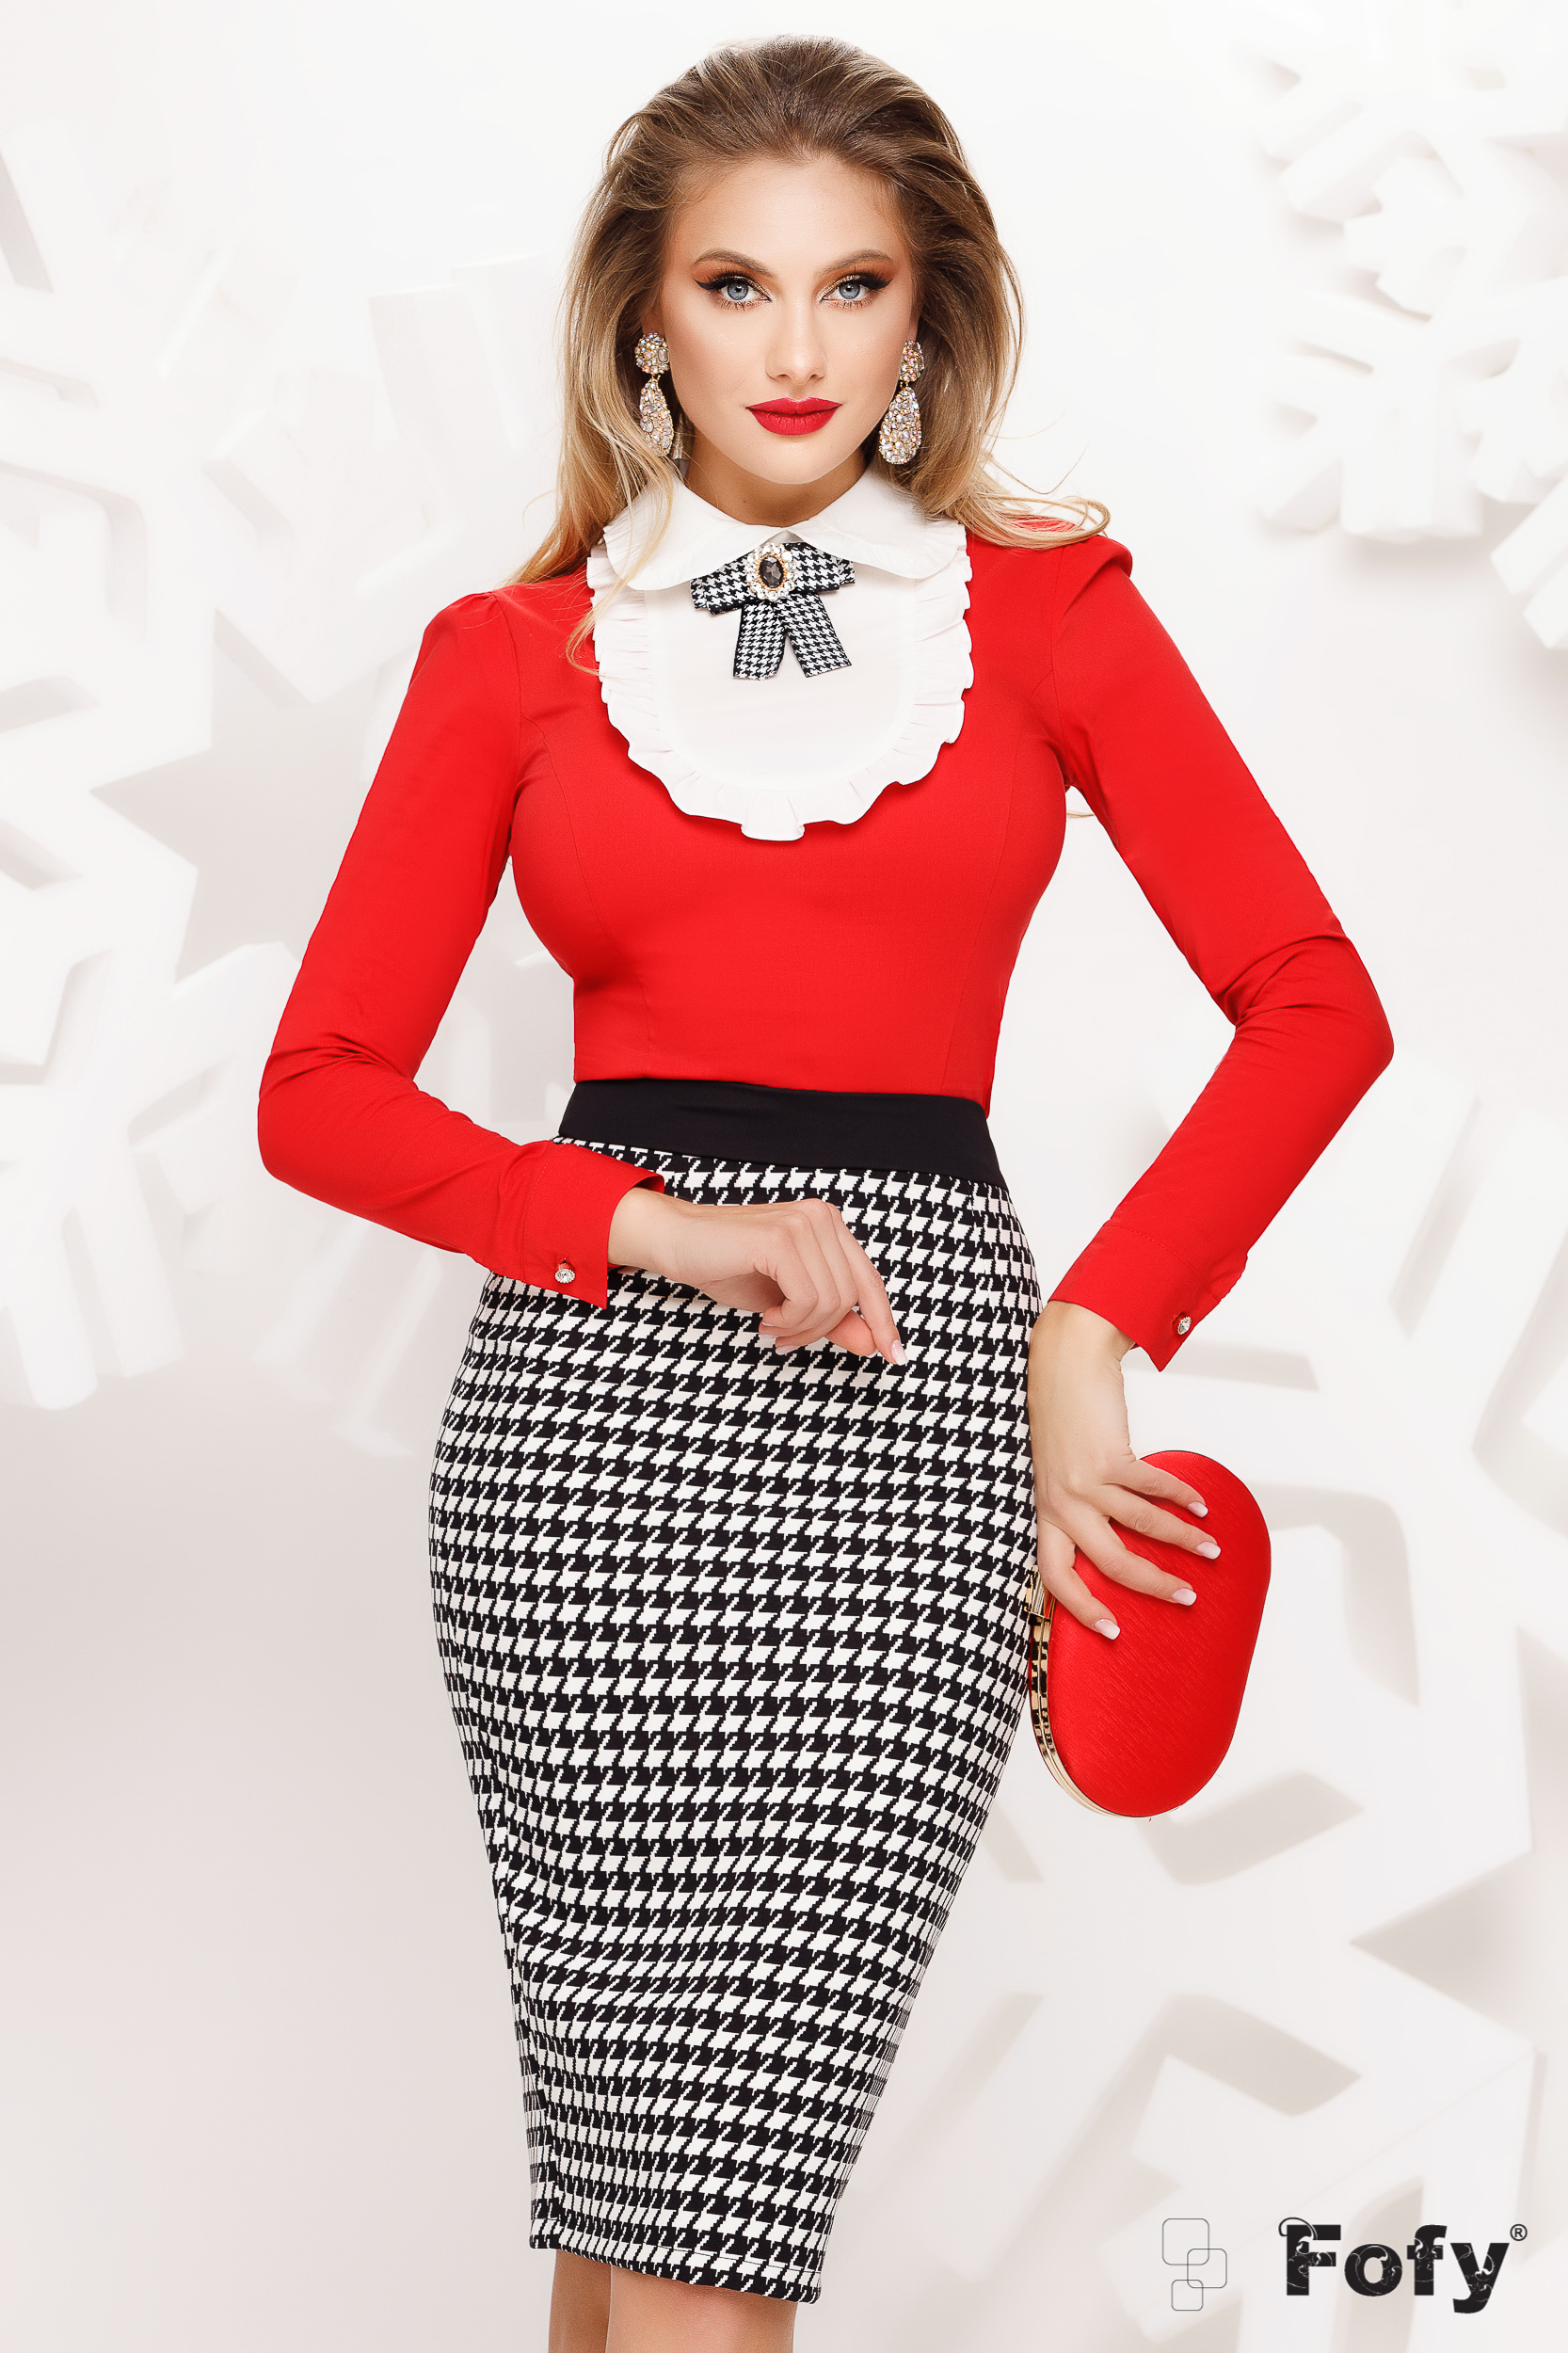 Women`s shirt red elegant bow accessory accessorized with breastpin ruffled collar